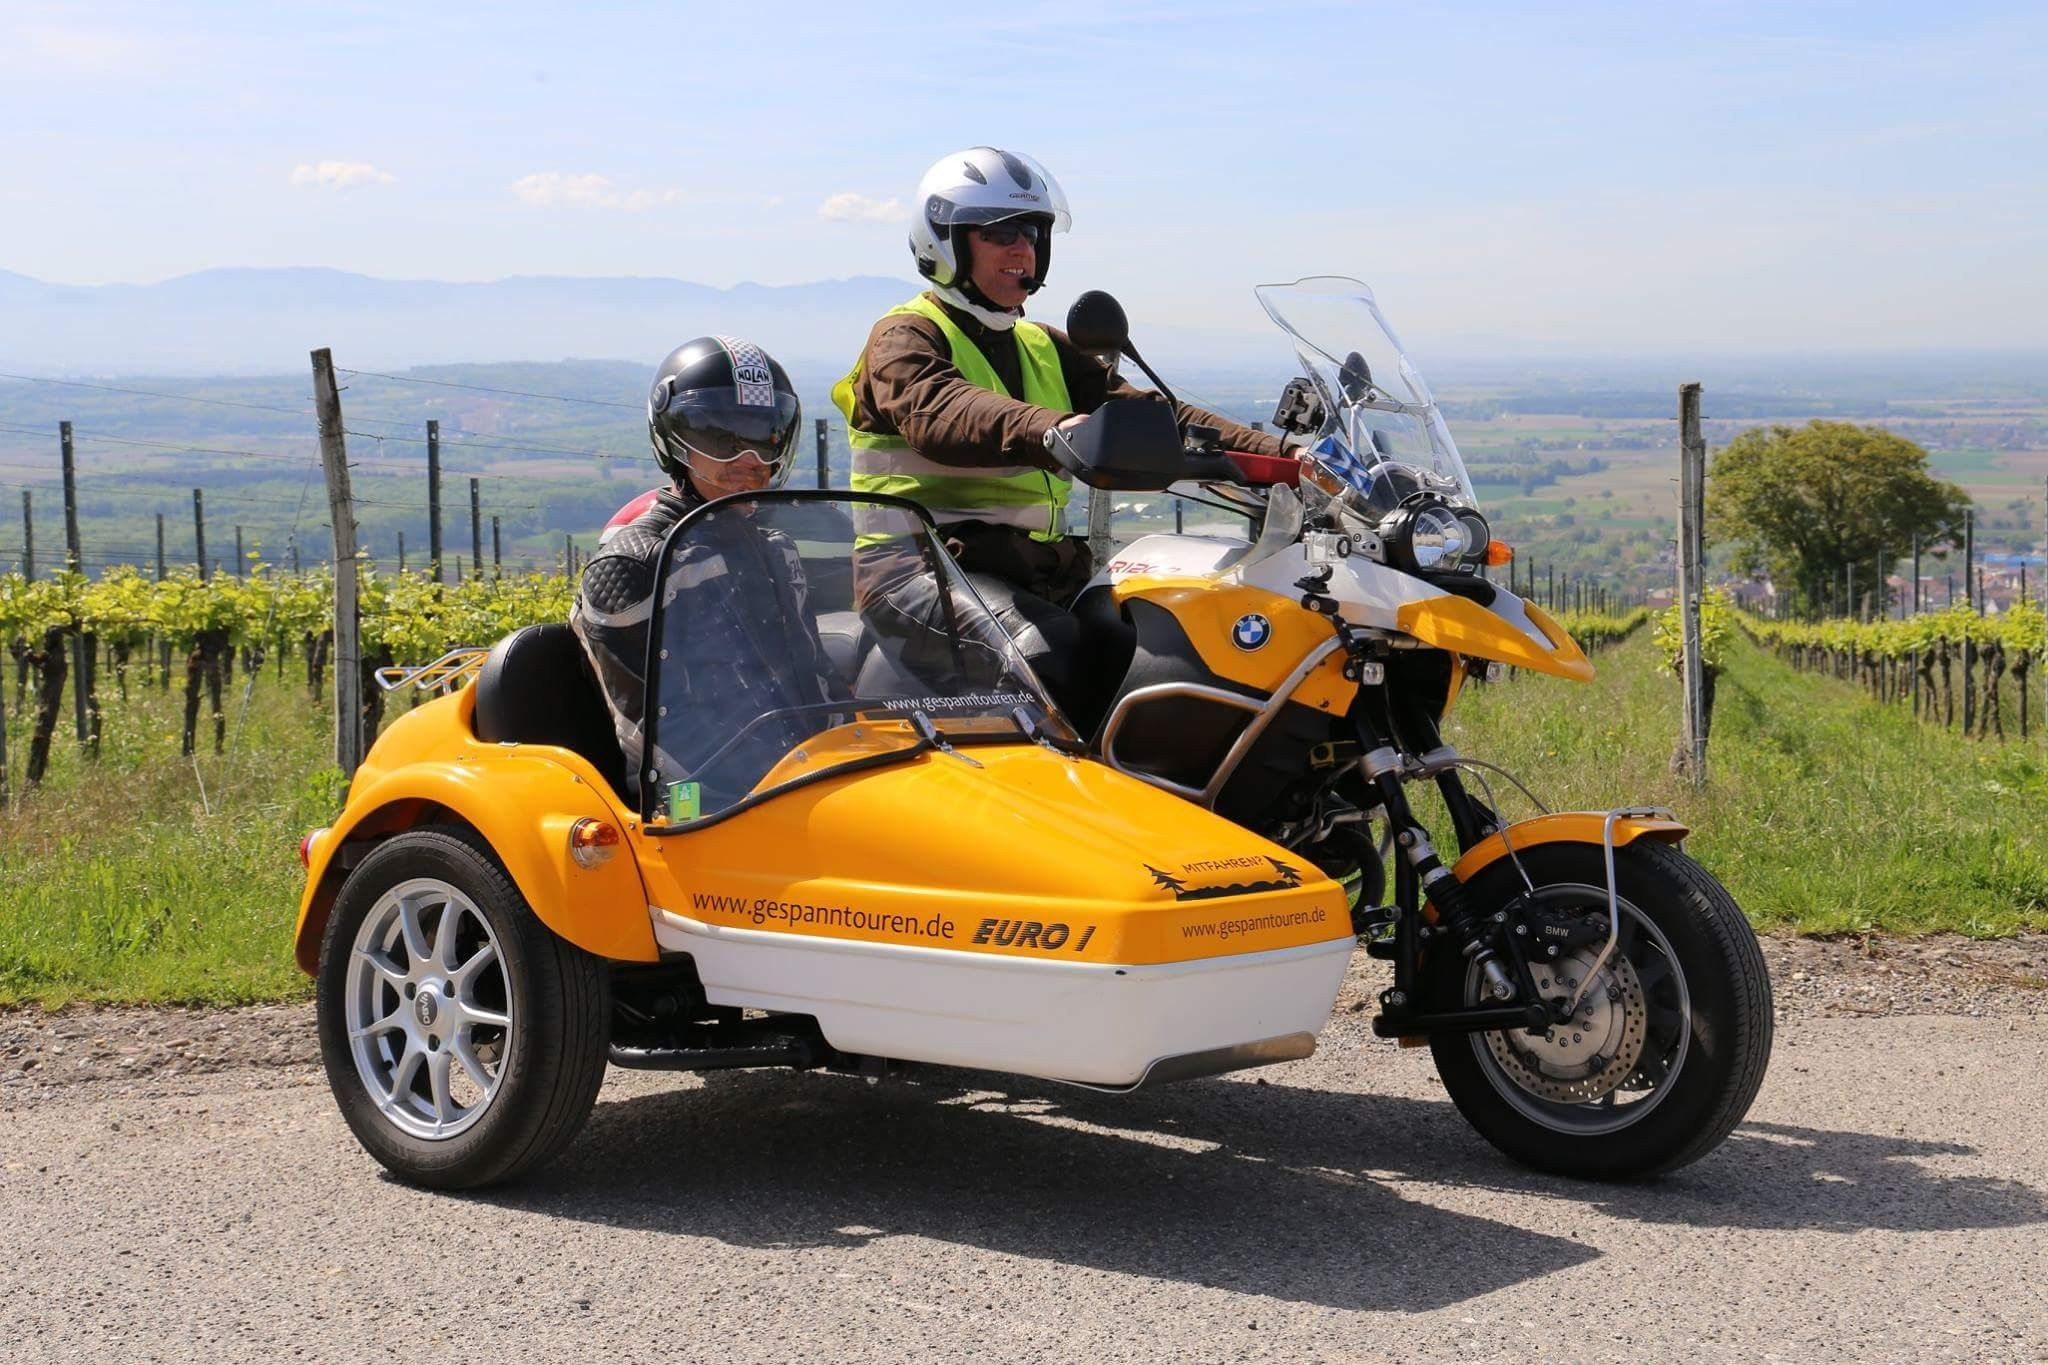 Pin by Paul Grossman on Sidecars | Motorcycle, Cars motorcycles, Sidecar